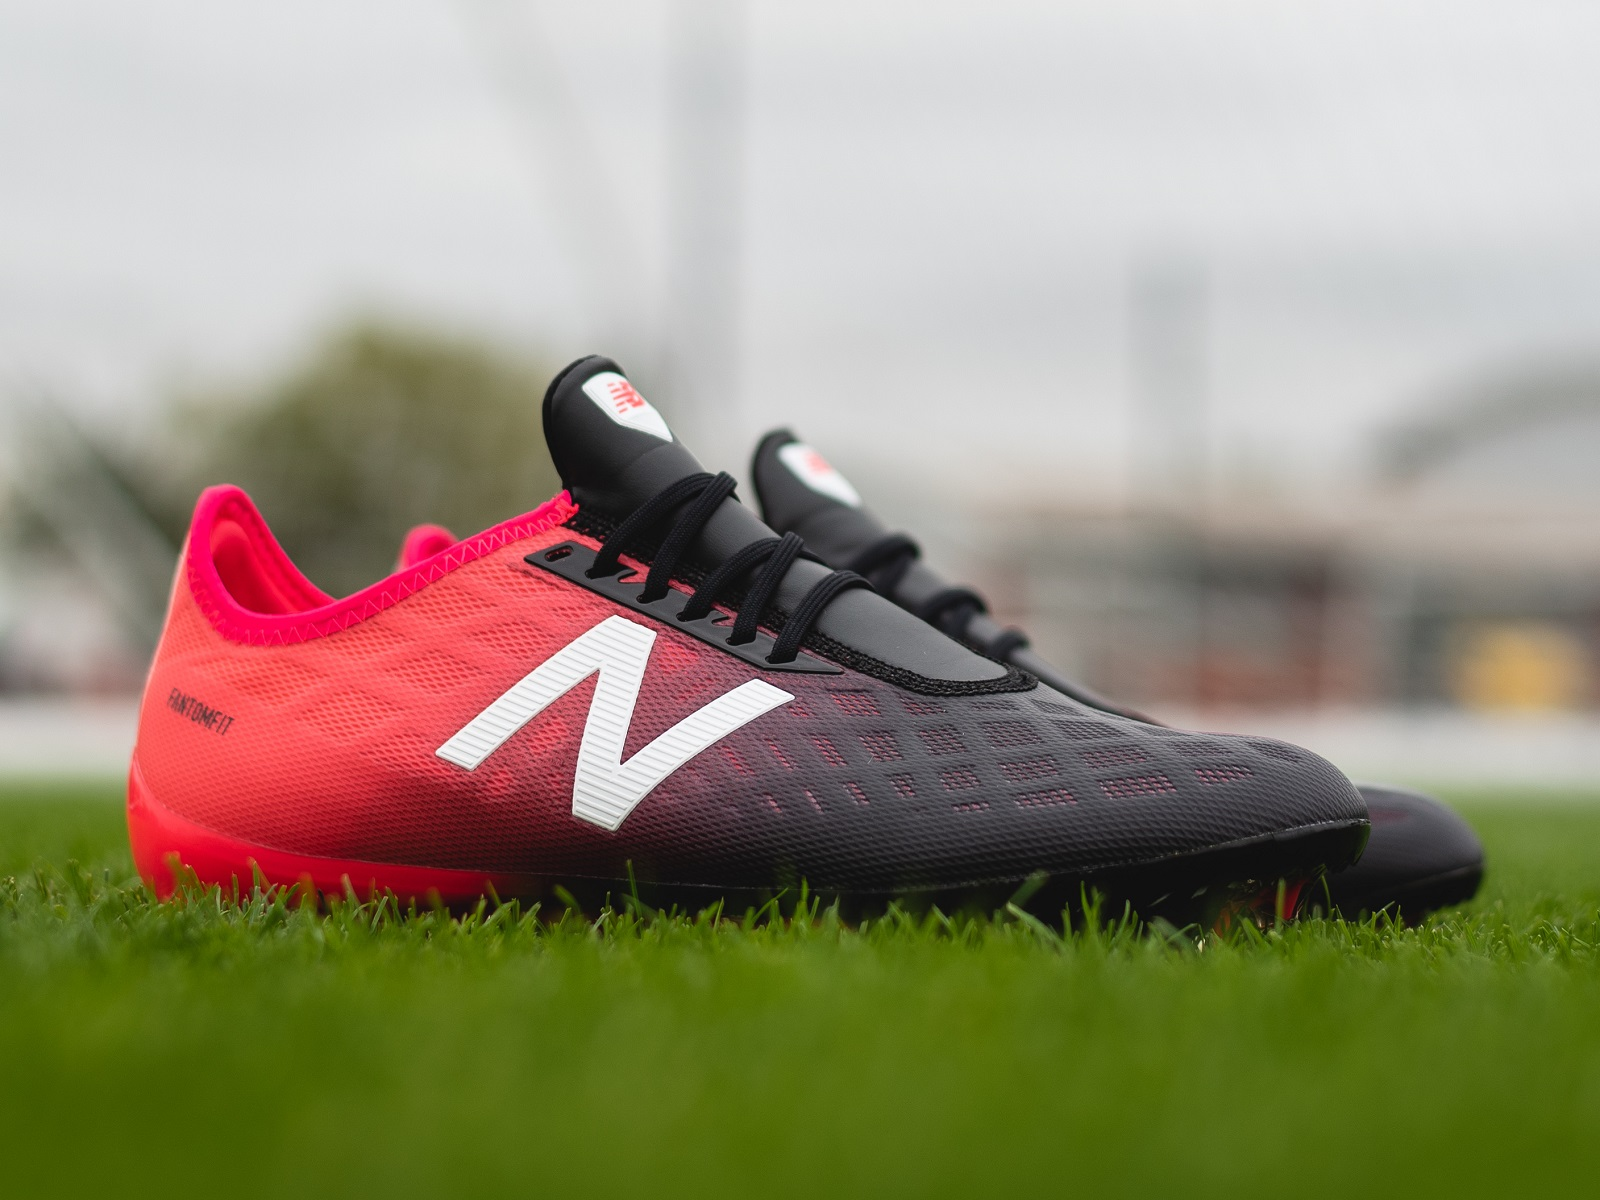 9d04003ecfb0 New Balance Furon 4.0 Black/Bright Cherry Released | Soccer Cleats 101